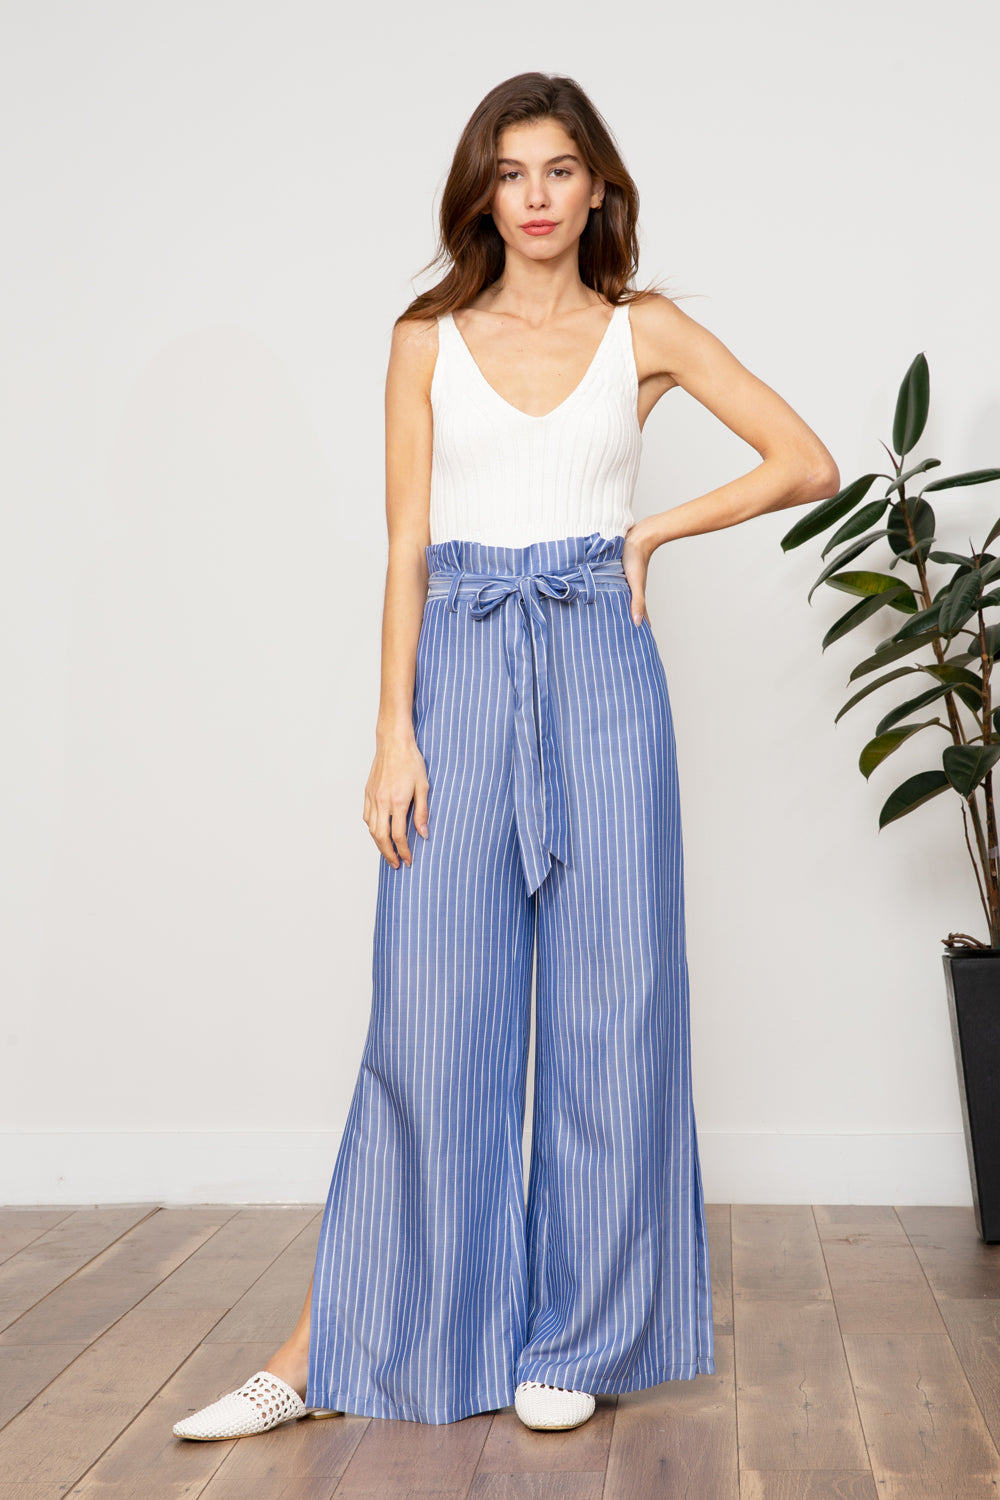 LUCY PARIS - Imogen Striped Pant - BLUE